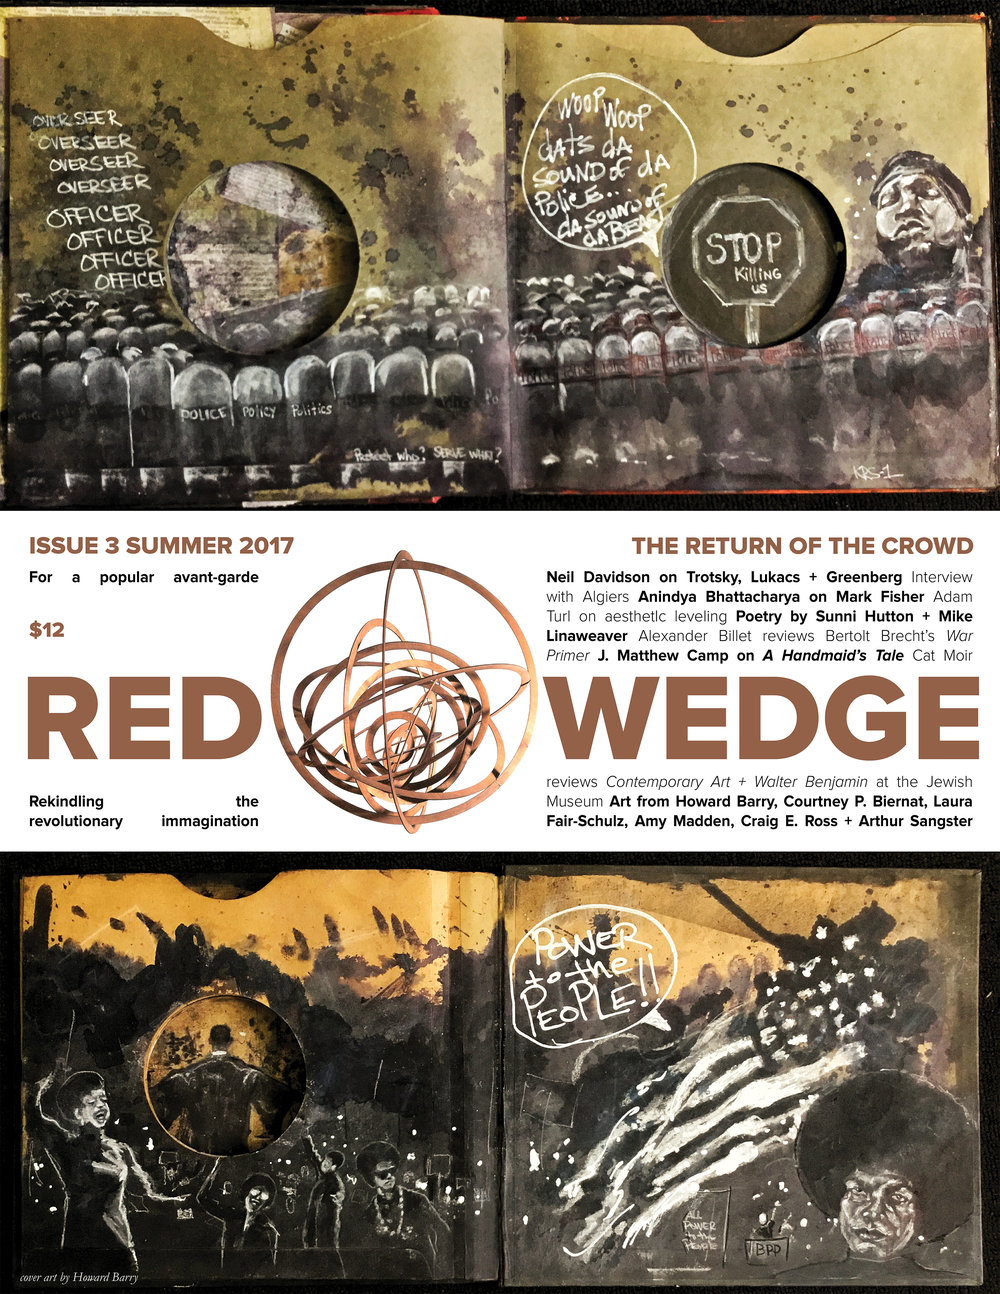 Red Wedge No. 3 will be released in mid-July. Cover art by Howard Barry.